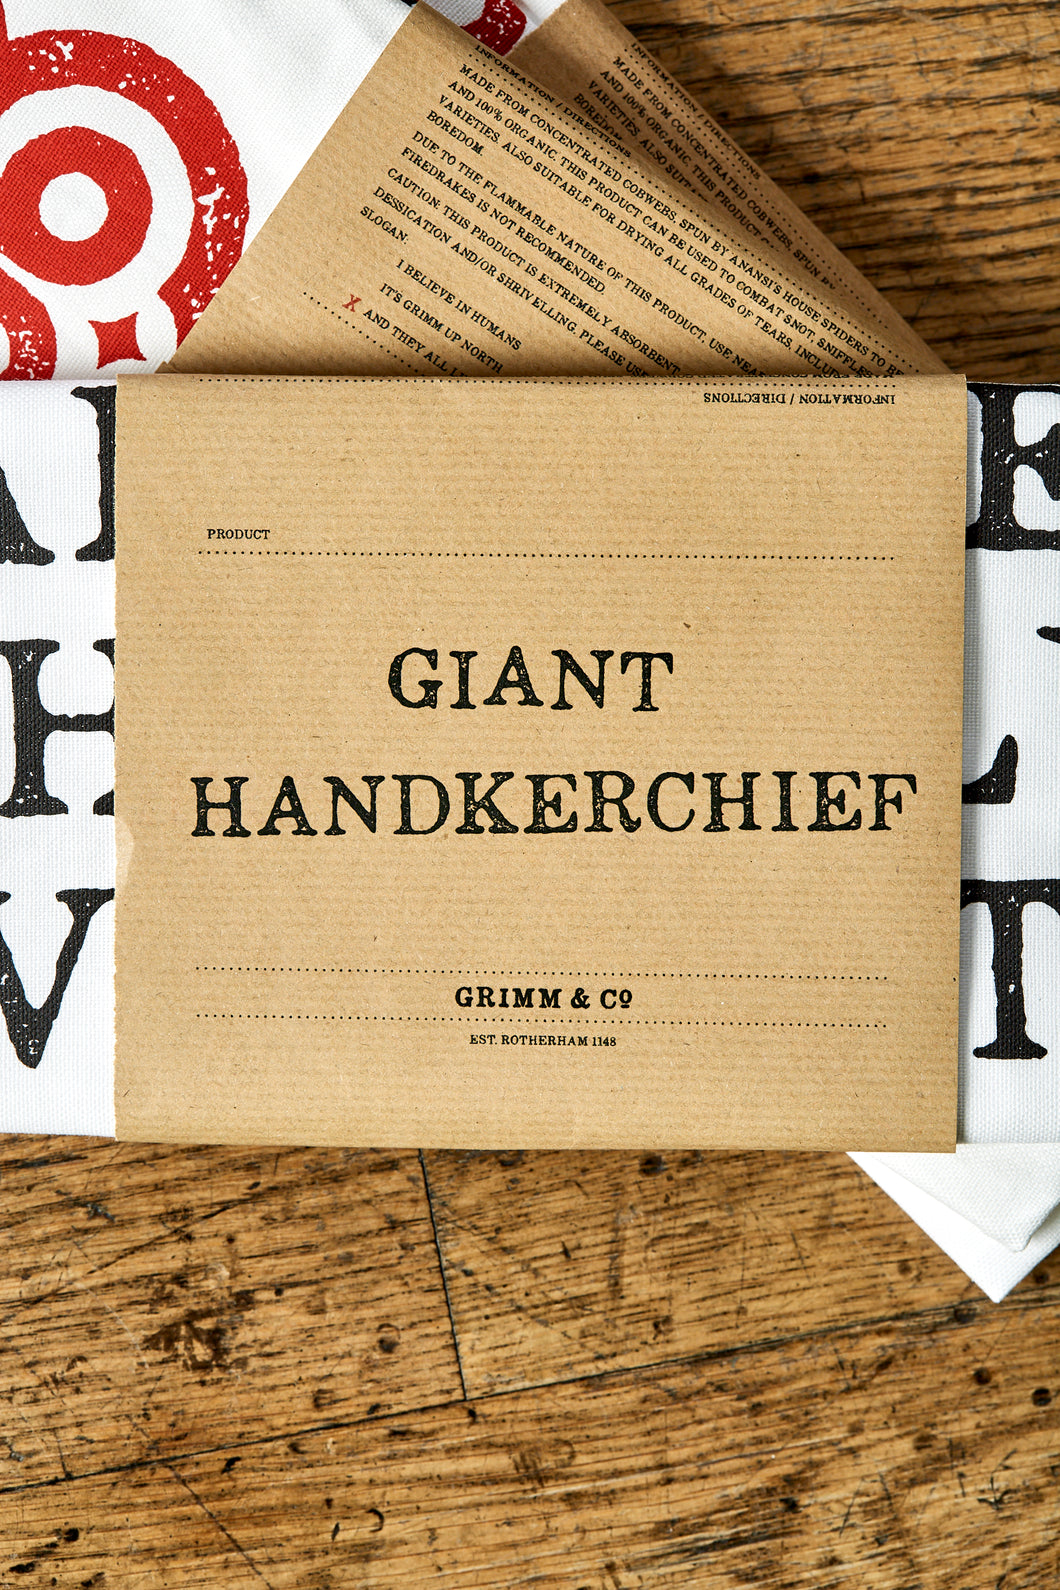 Giant Handkerchief - It's Grimm Up North